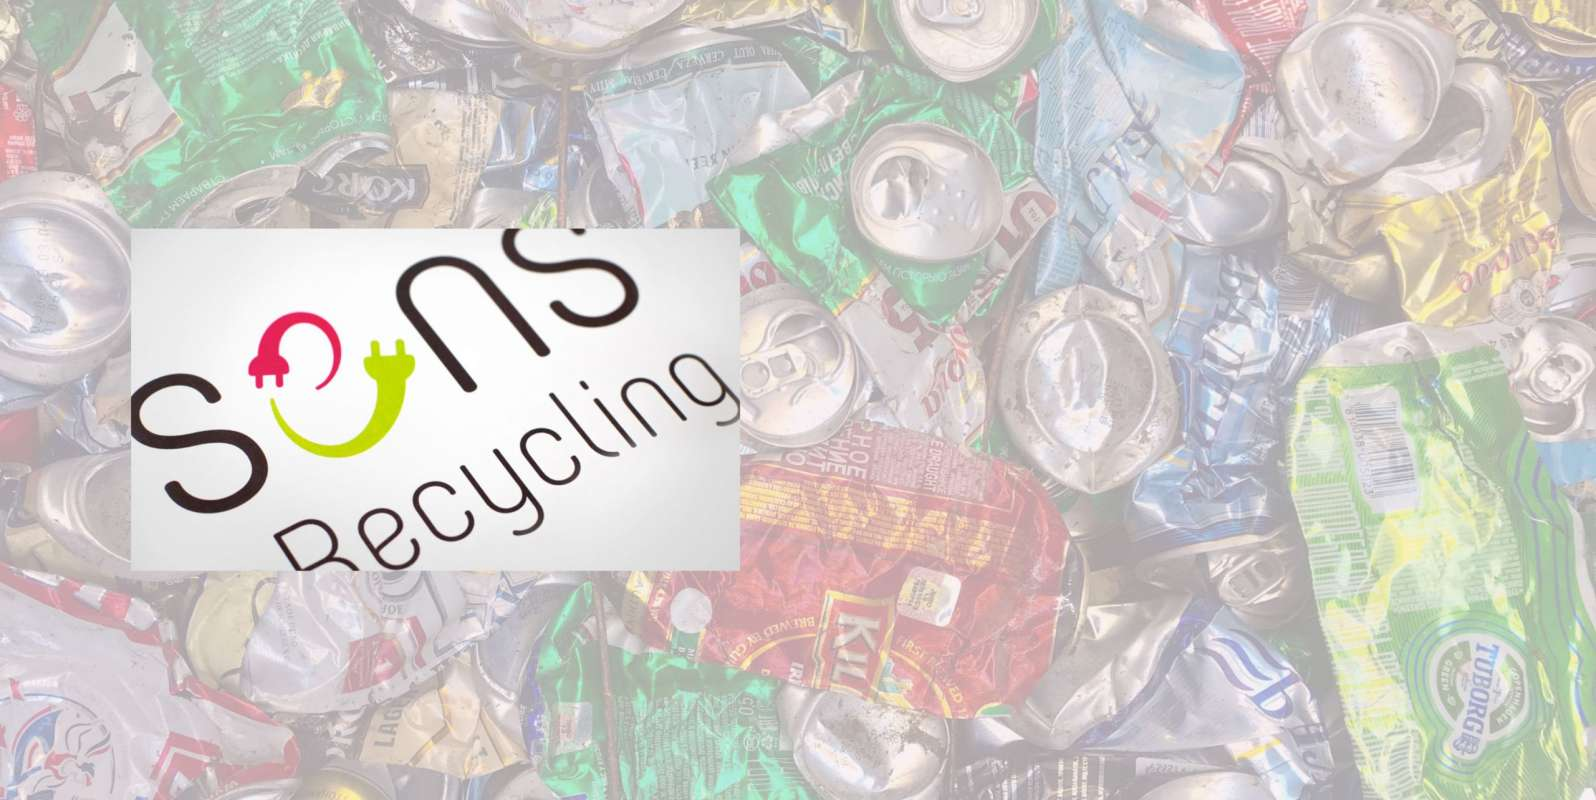 We support the   eRecycling loop